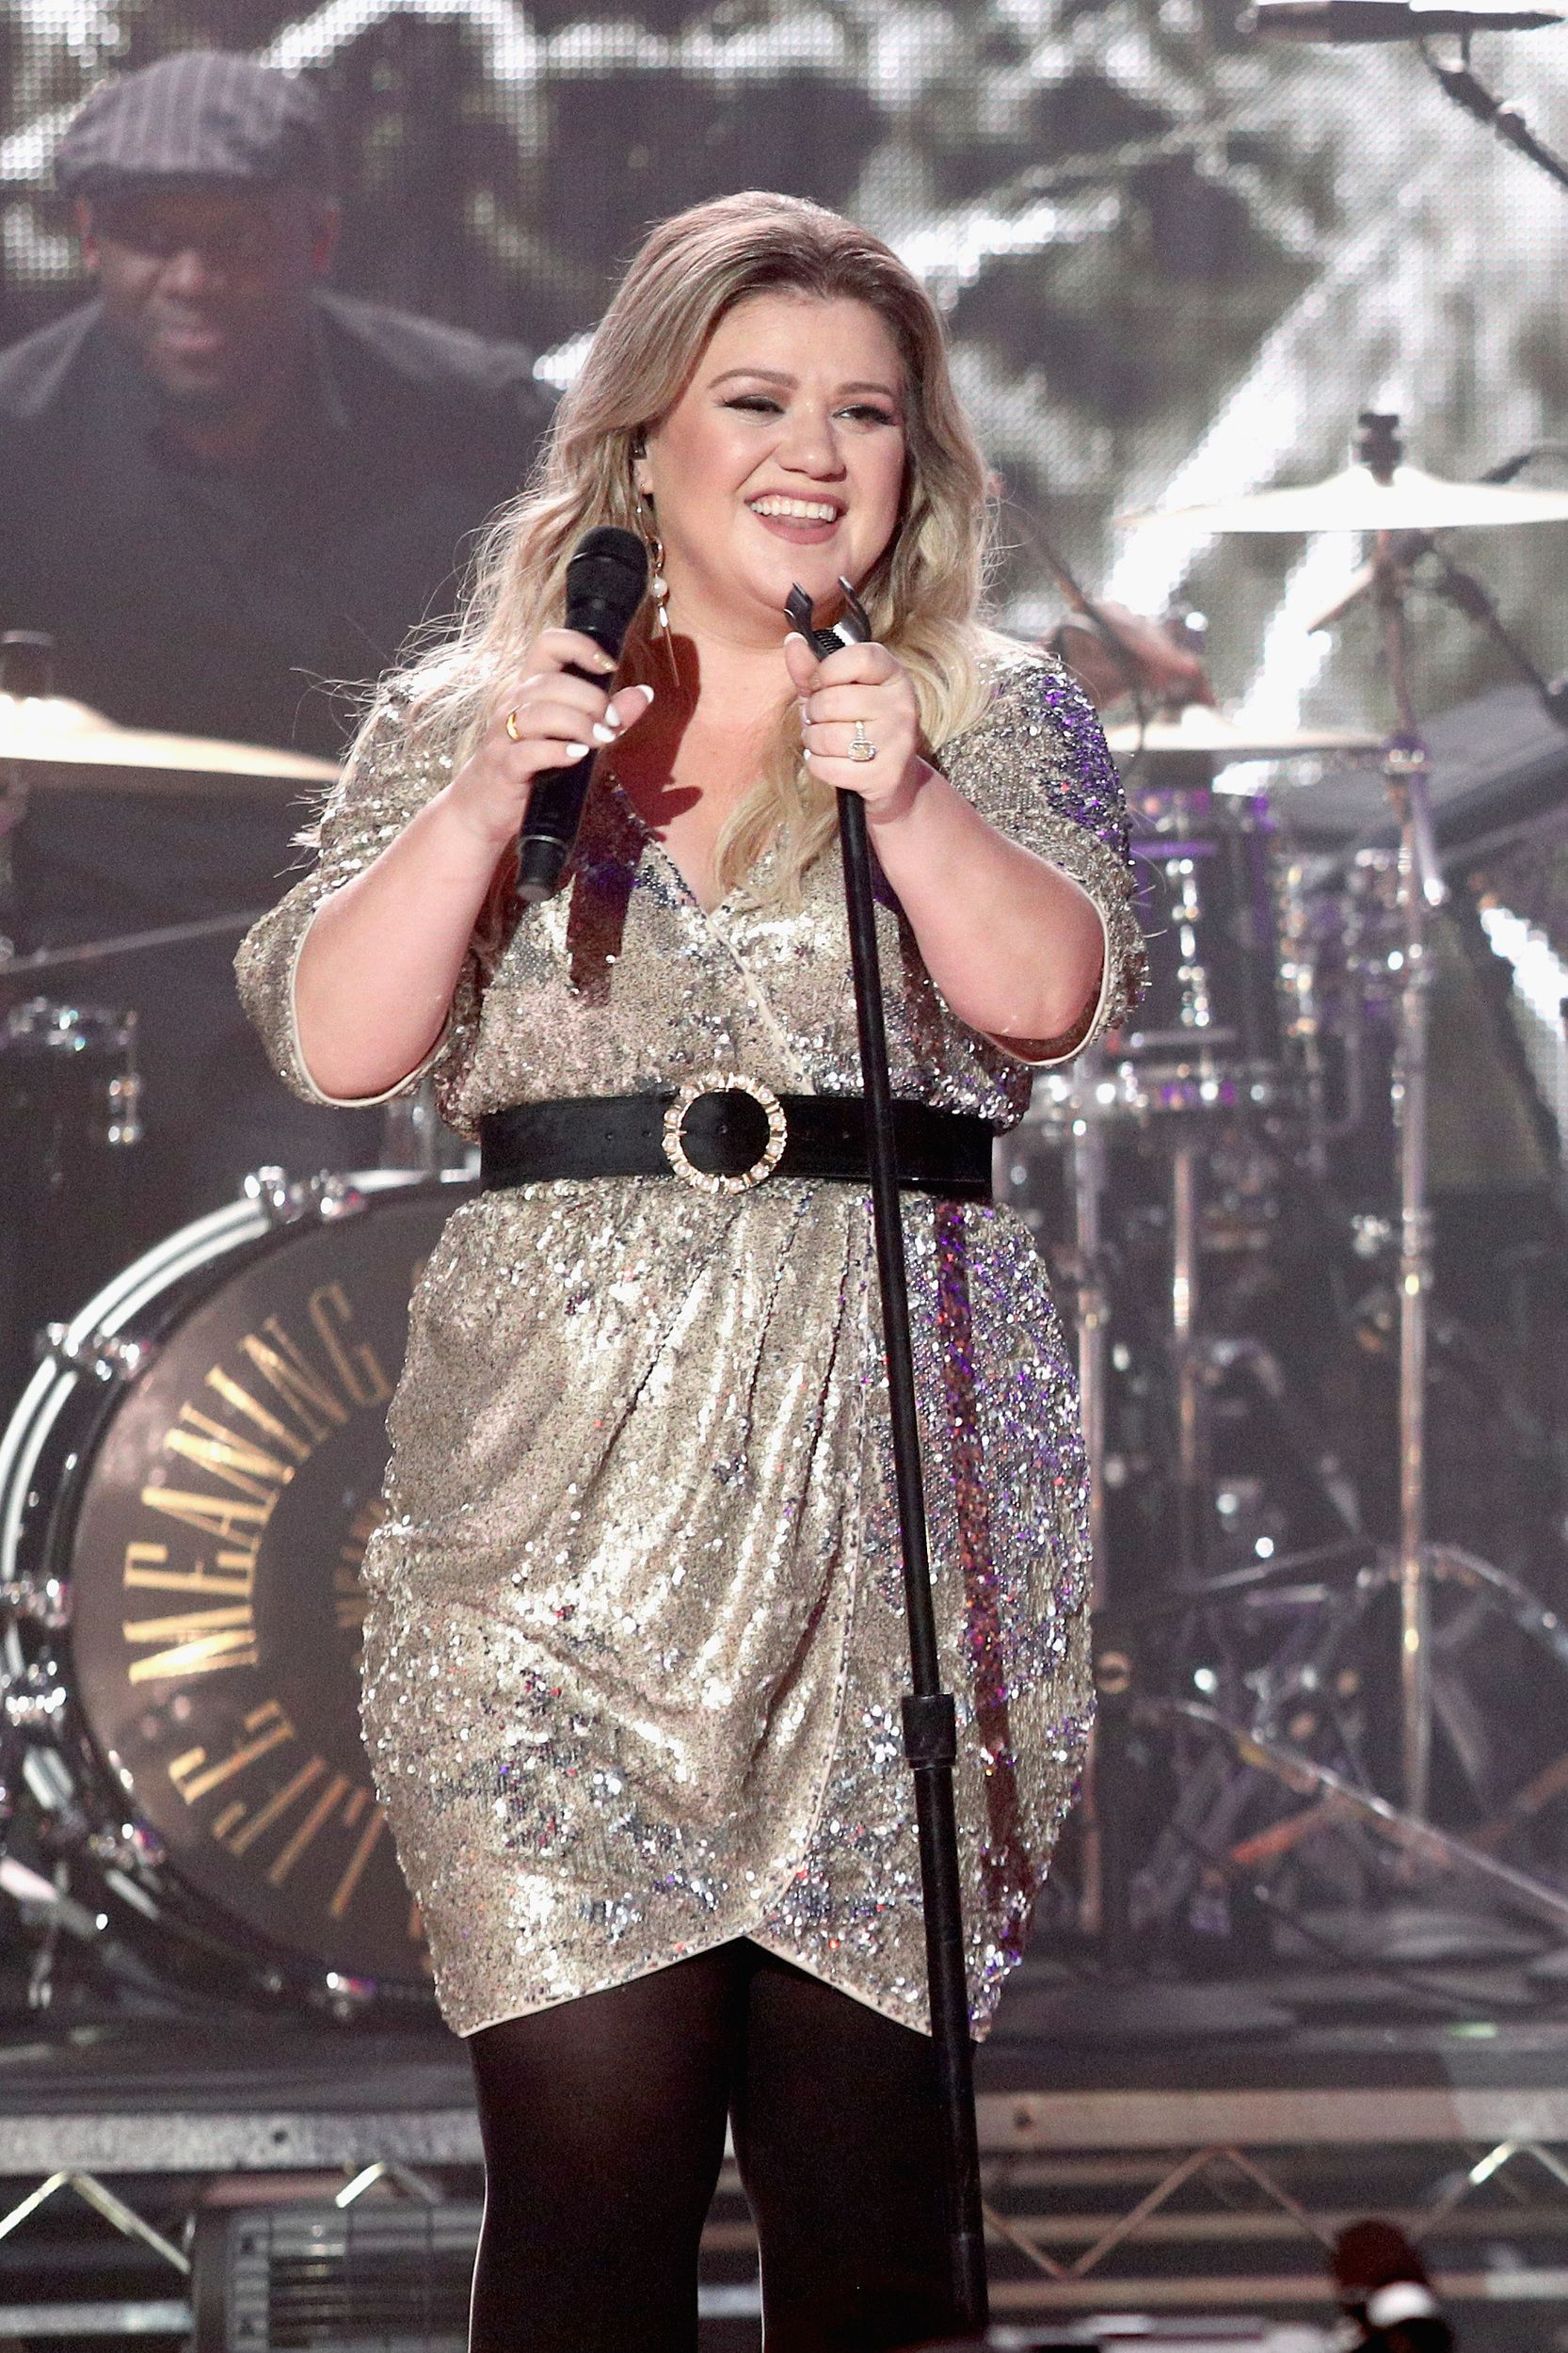 49 Hot Pictures Of Kelly Clarkson Which Will Hypnotise You